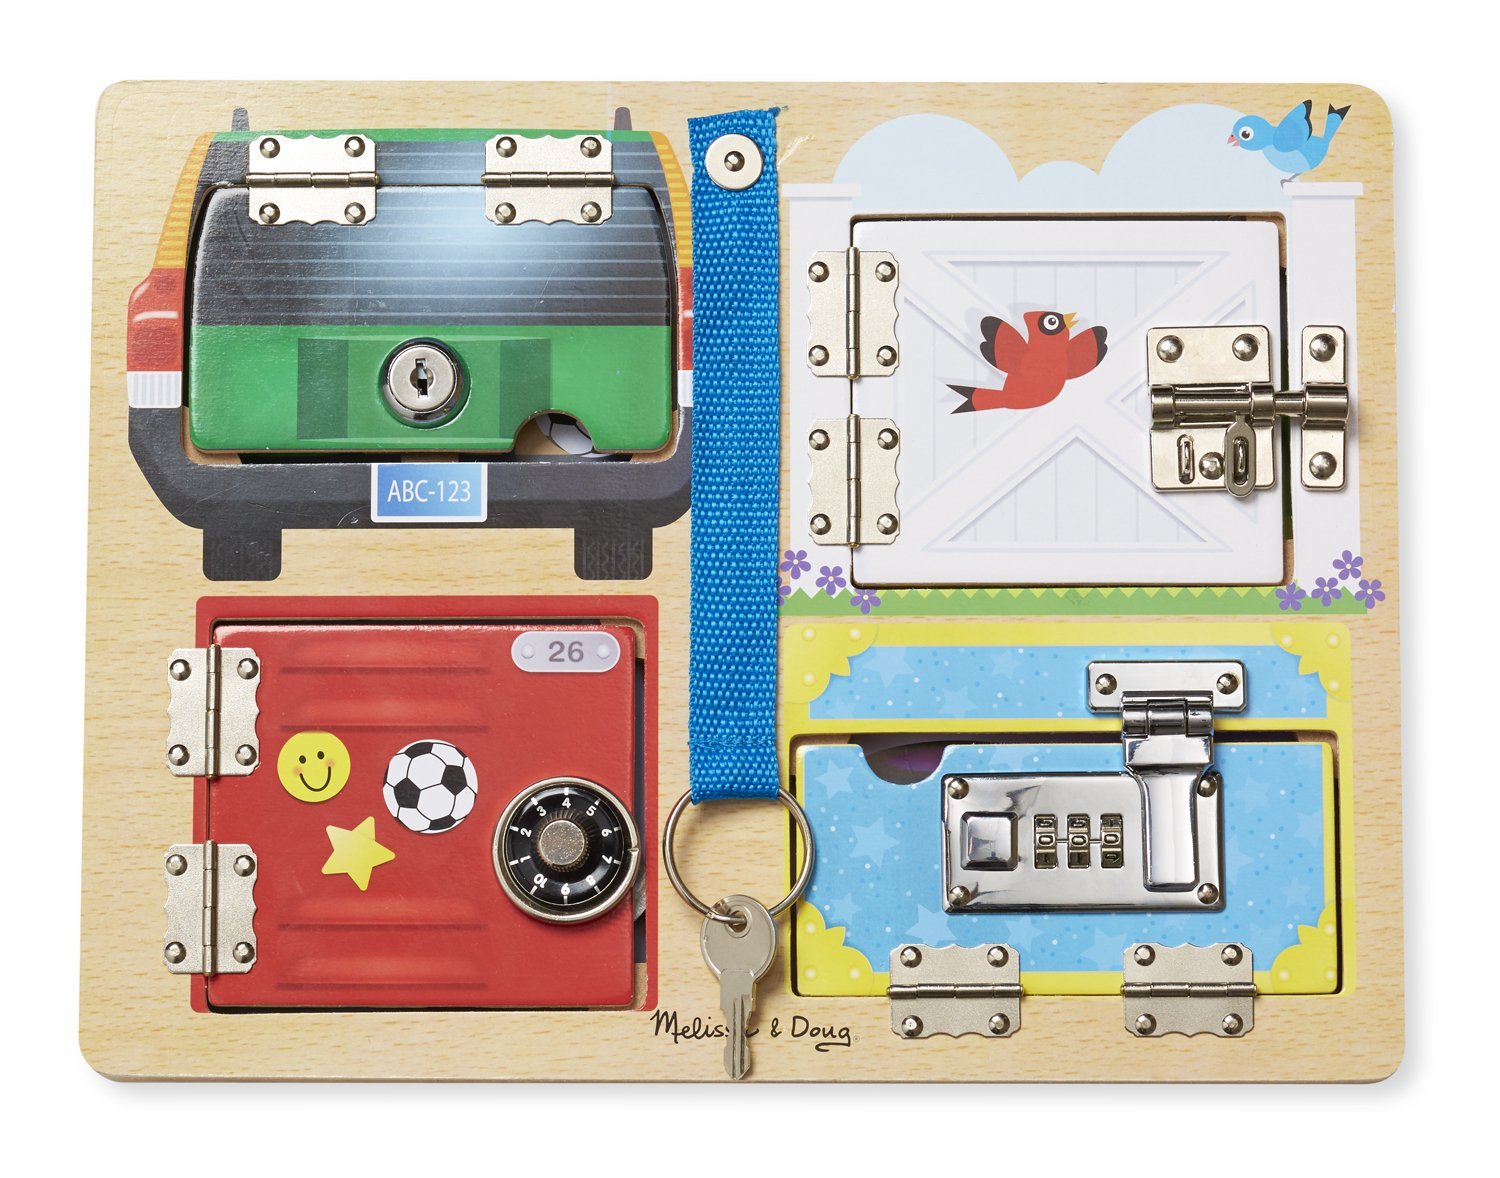 Melissa And Doug Retro Kitchen Melissa Doug 19540 Lock And Latch Board With 3 Pretend Keys For